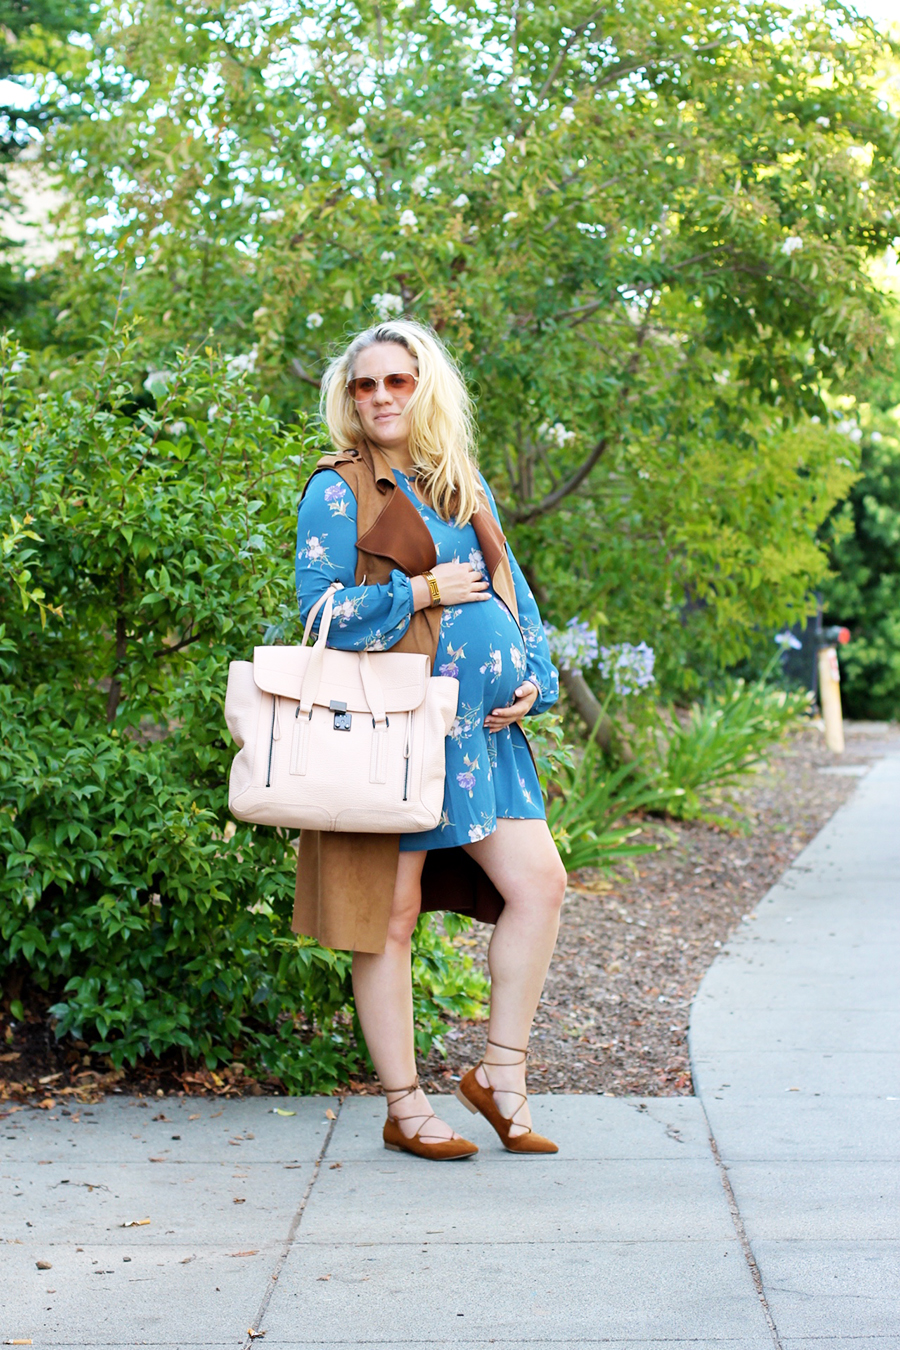 Fall Transition-Nordstrom Anniversary Sale-Maternity Style-Fall Fashion-Have Need Want 10